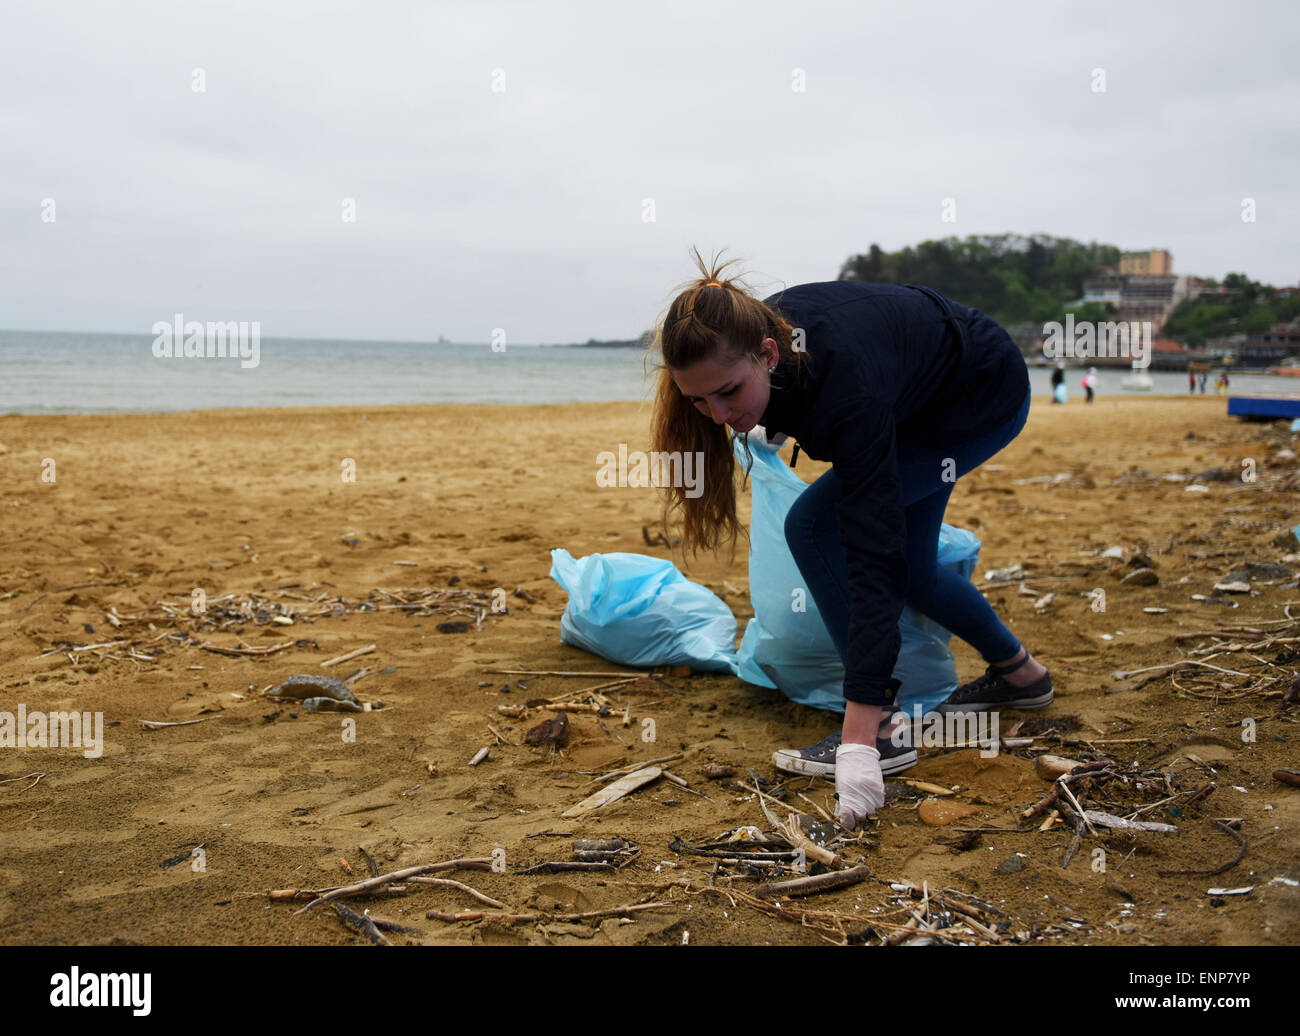 Istanbul, Turkey. 9th May, 2015. A volunteer picks up litter at the seashore of Black Sea in Istanbul, Turkey, on - Stock Image